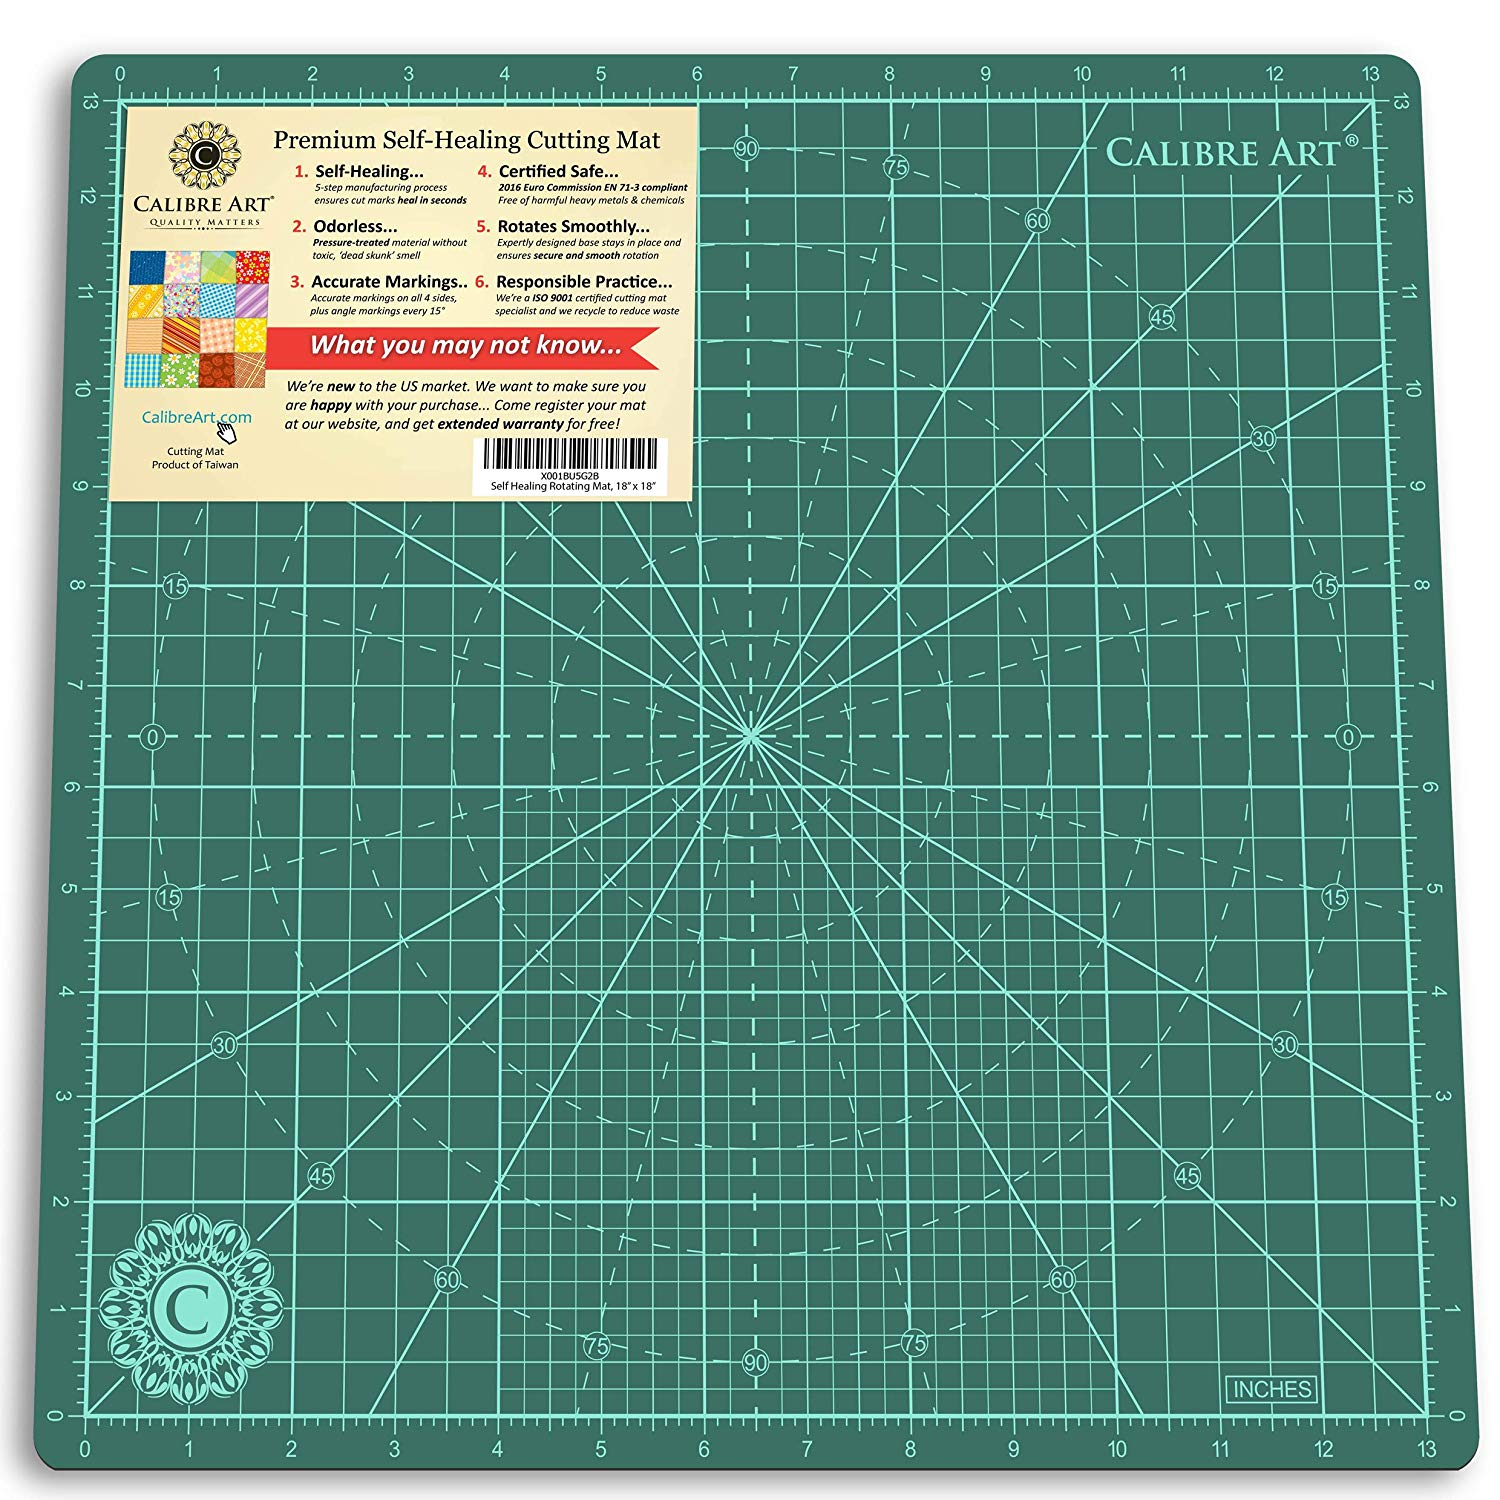 Calibre Art Rotating Self-Healing Cutting Mat